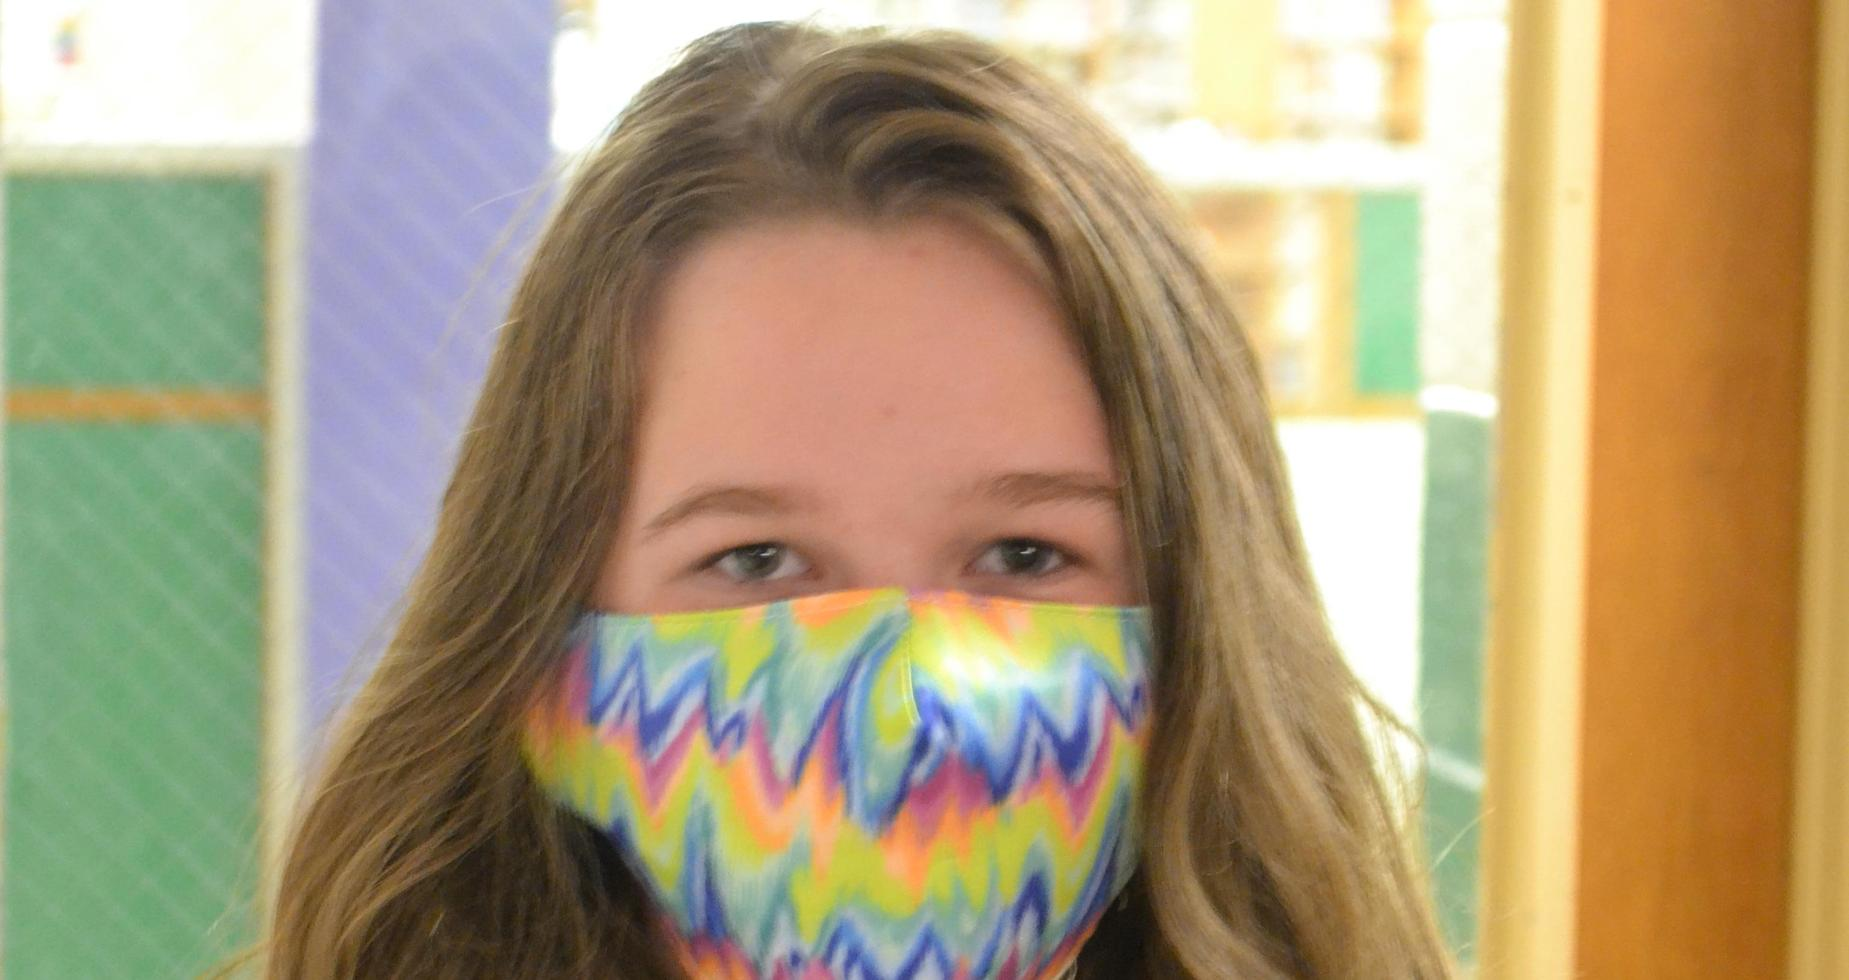 a picture of a colorful student mask